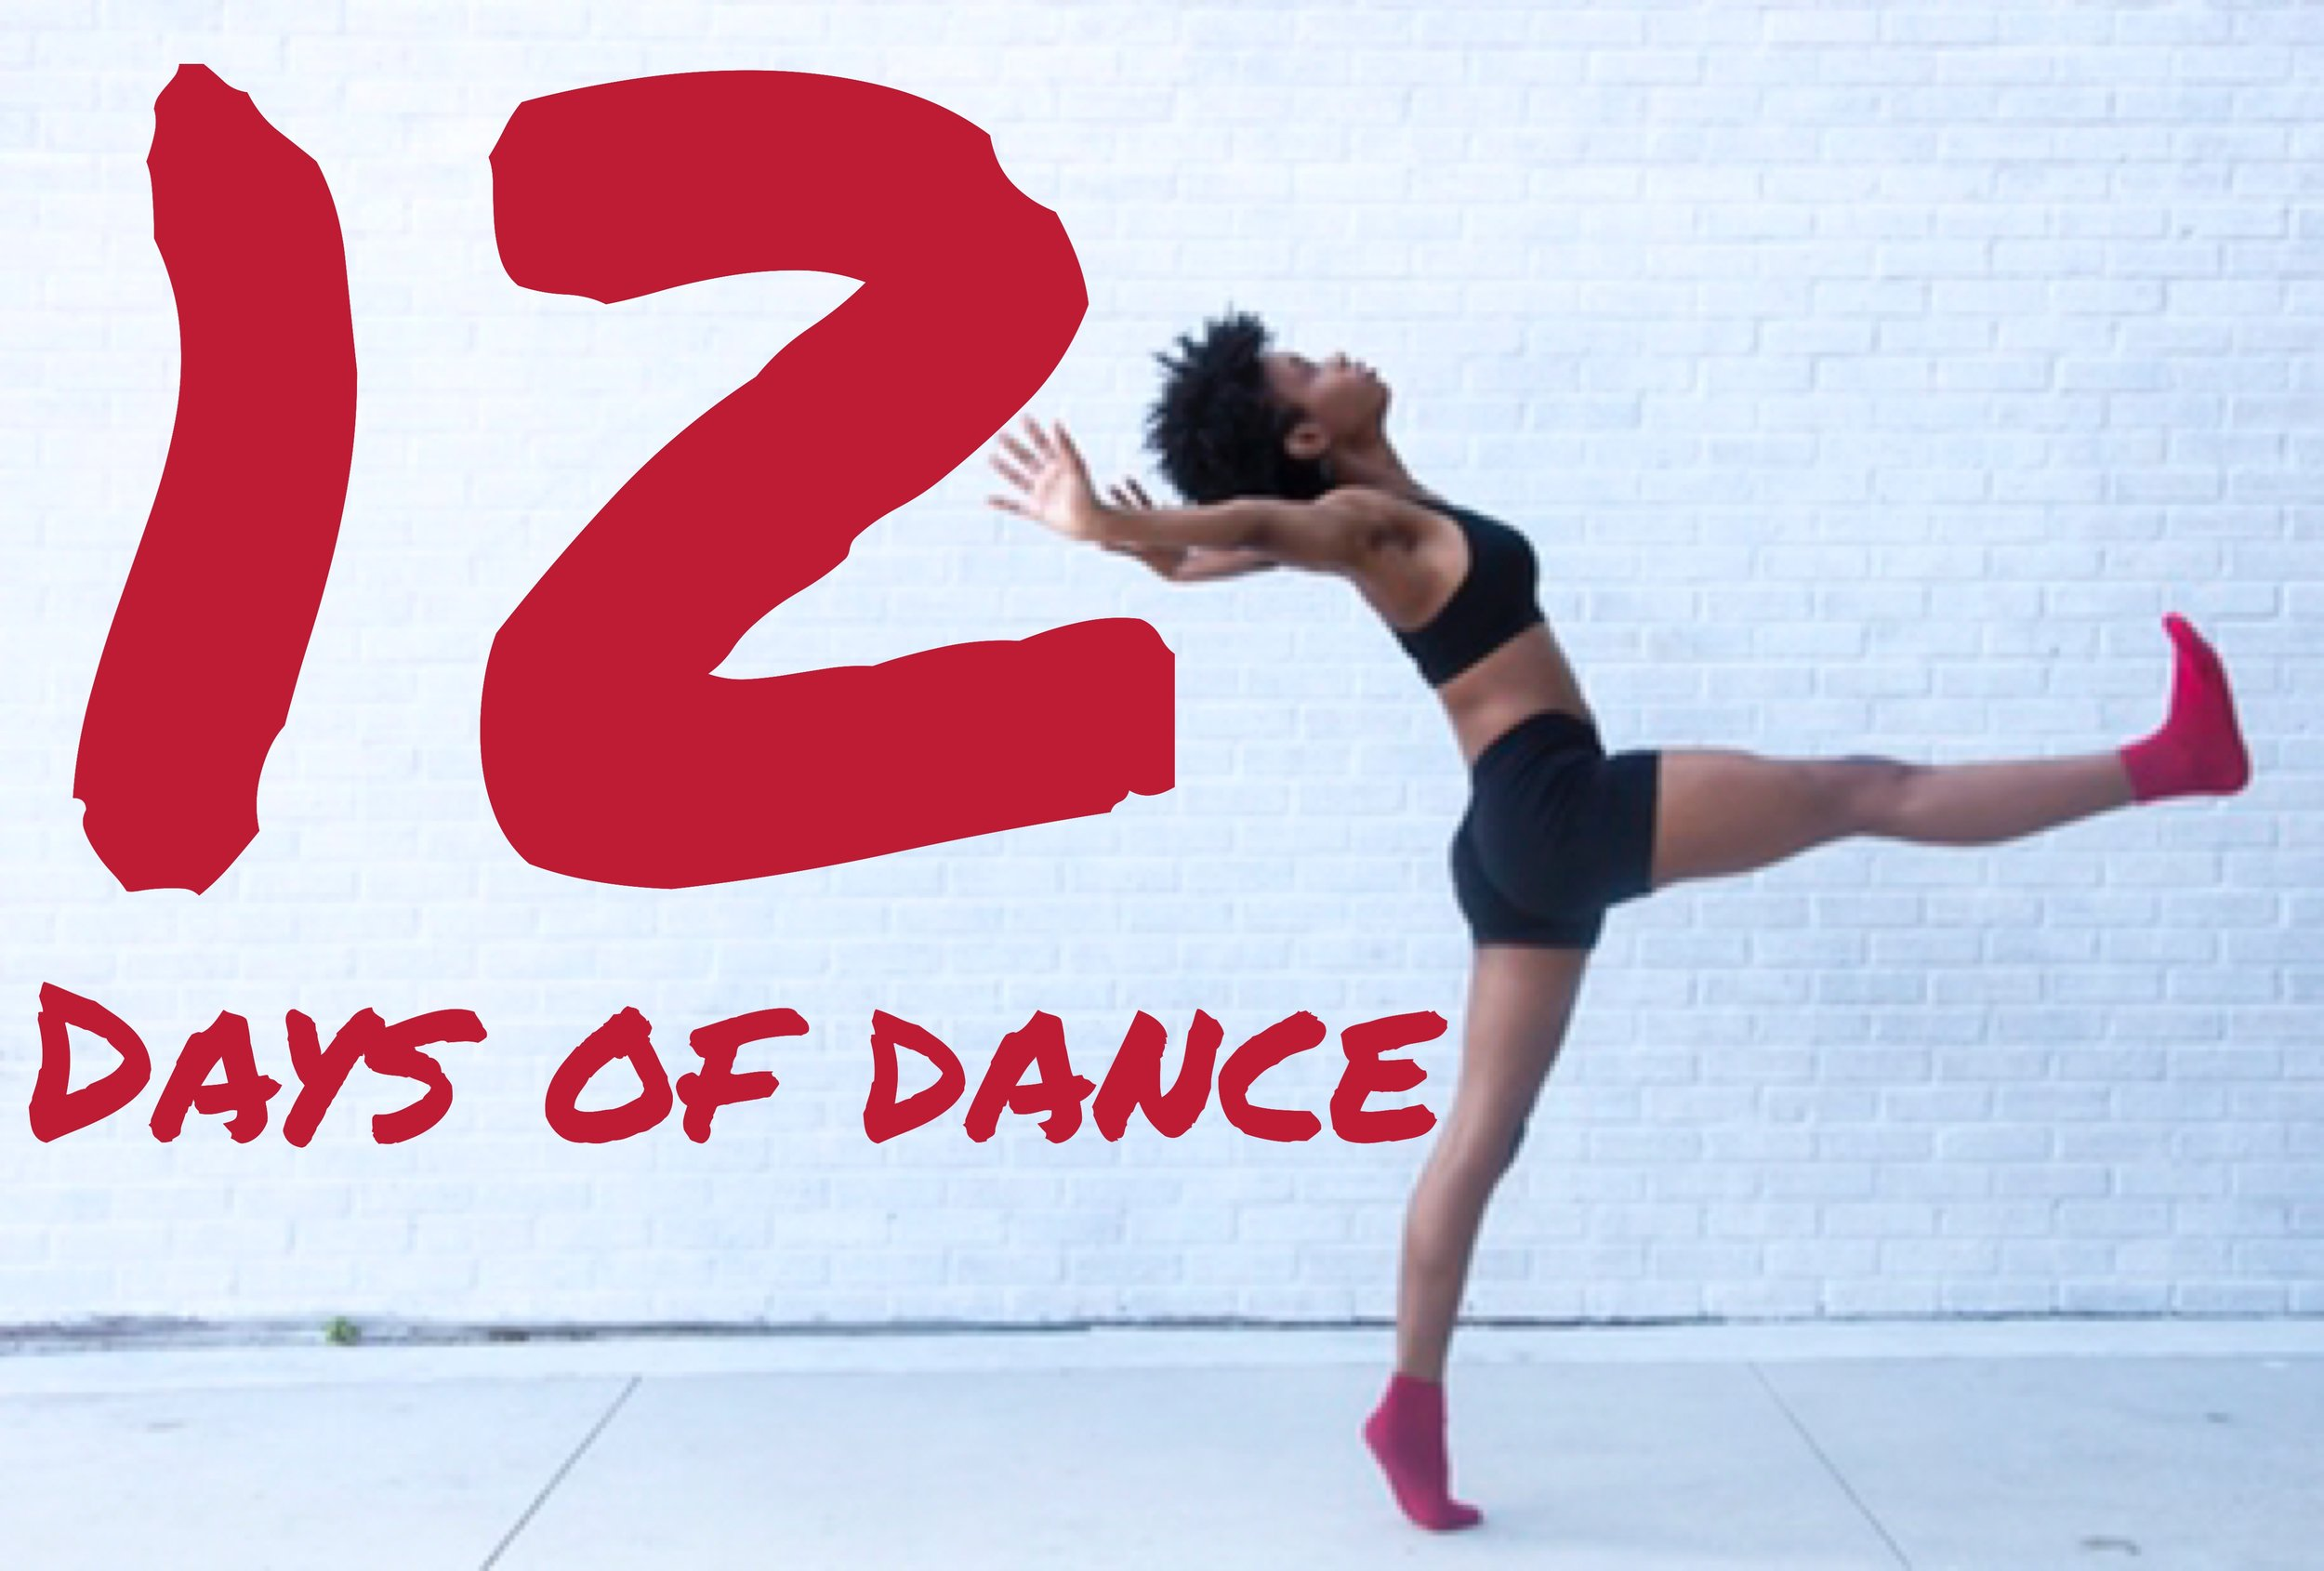 - Hosted by Collective Soles Dance, this master class series is designed for intermediate, pre-professional, and professional dancers looking to strengthen their technique, expand their improvisational skills, and explore their artistic voice within various choreographic phrase works.